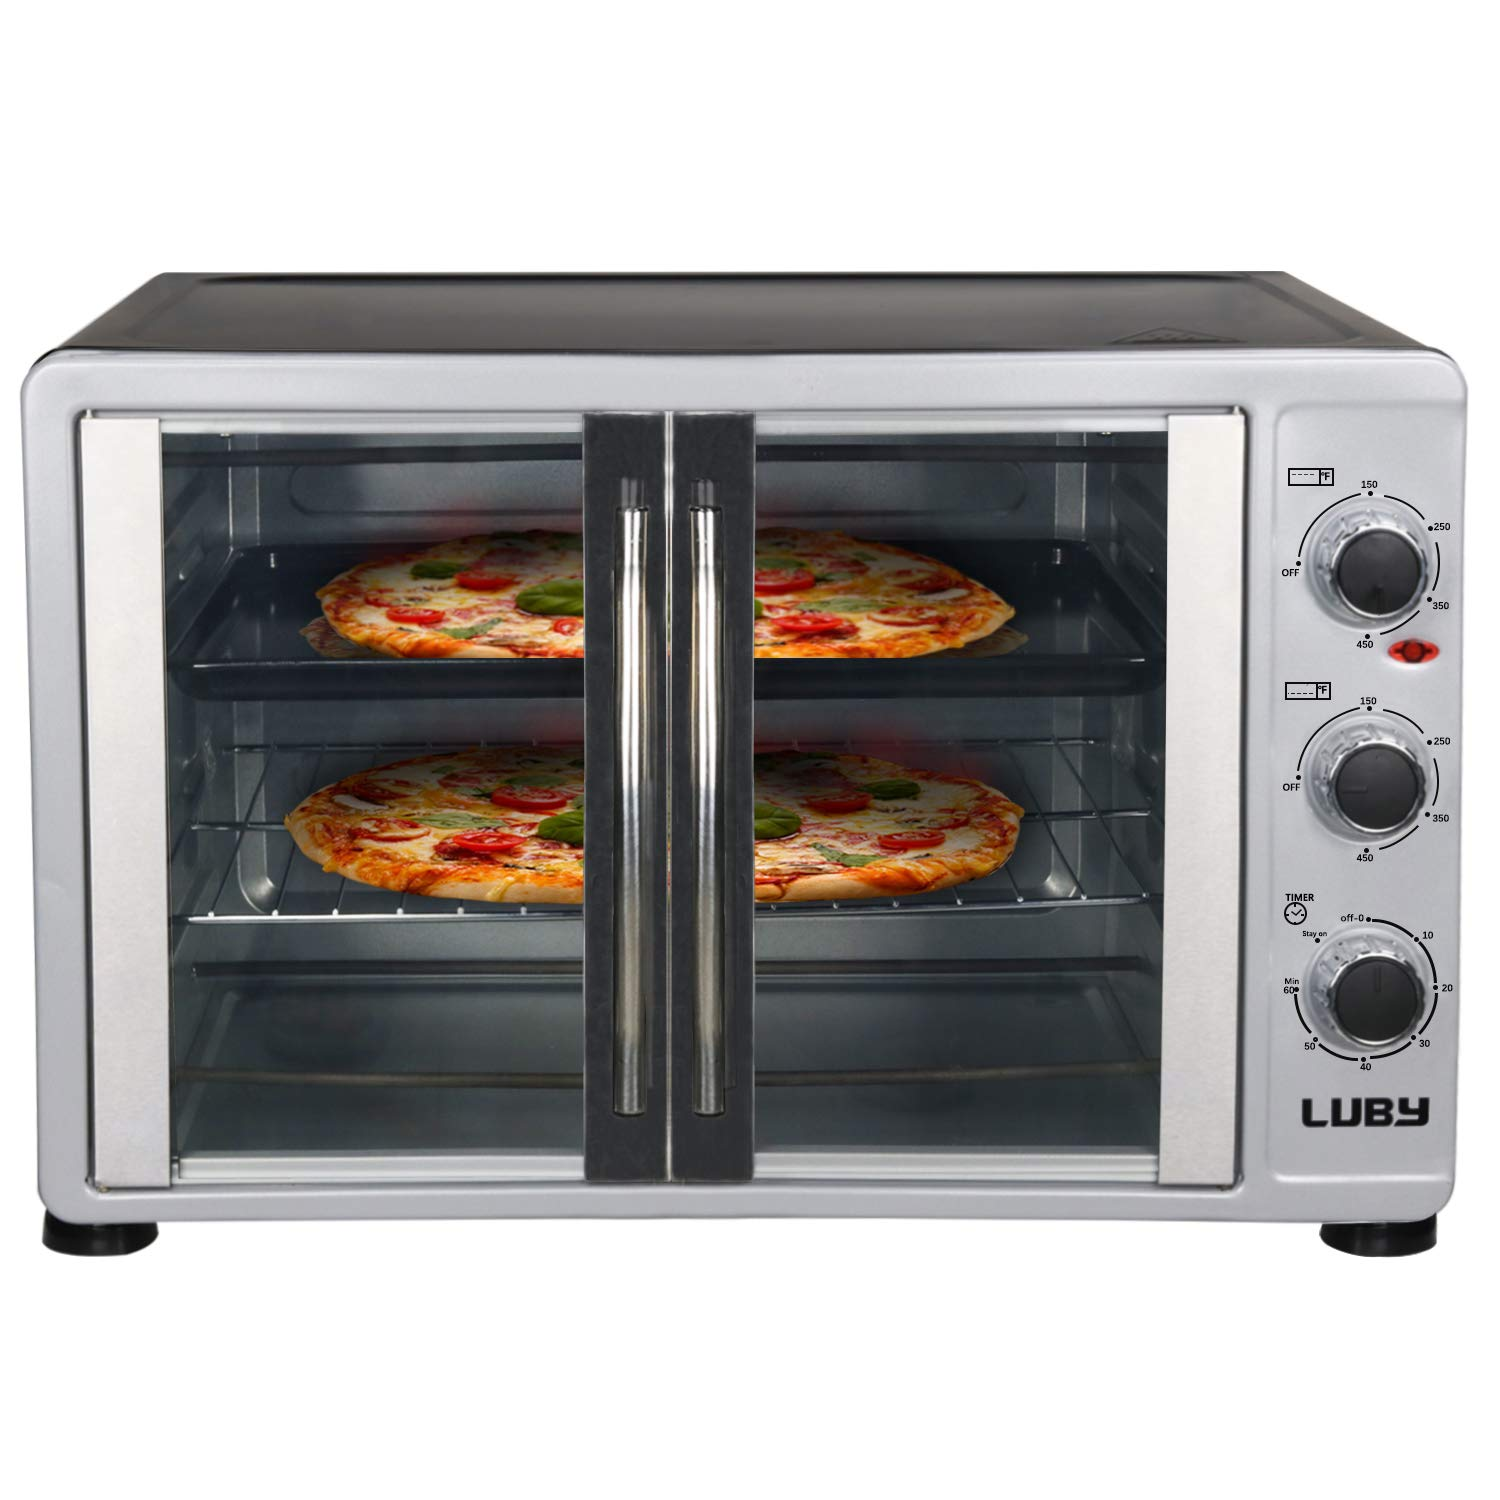 Luby Extra Large 55L toaster oven, 18 Slices,14'' pizza,20lb Turkey, Silver,Stainless Steel by Luby